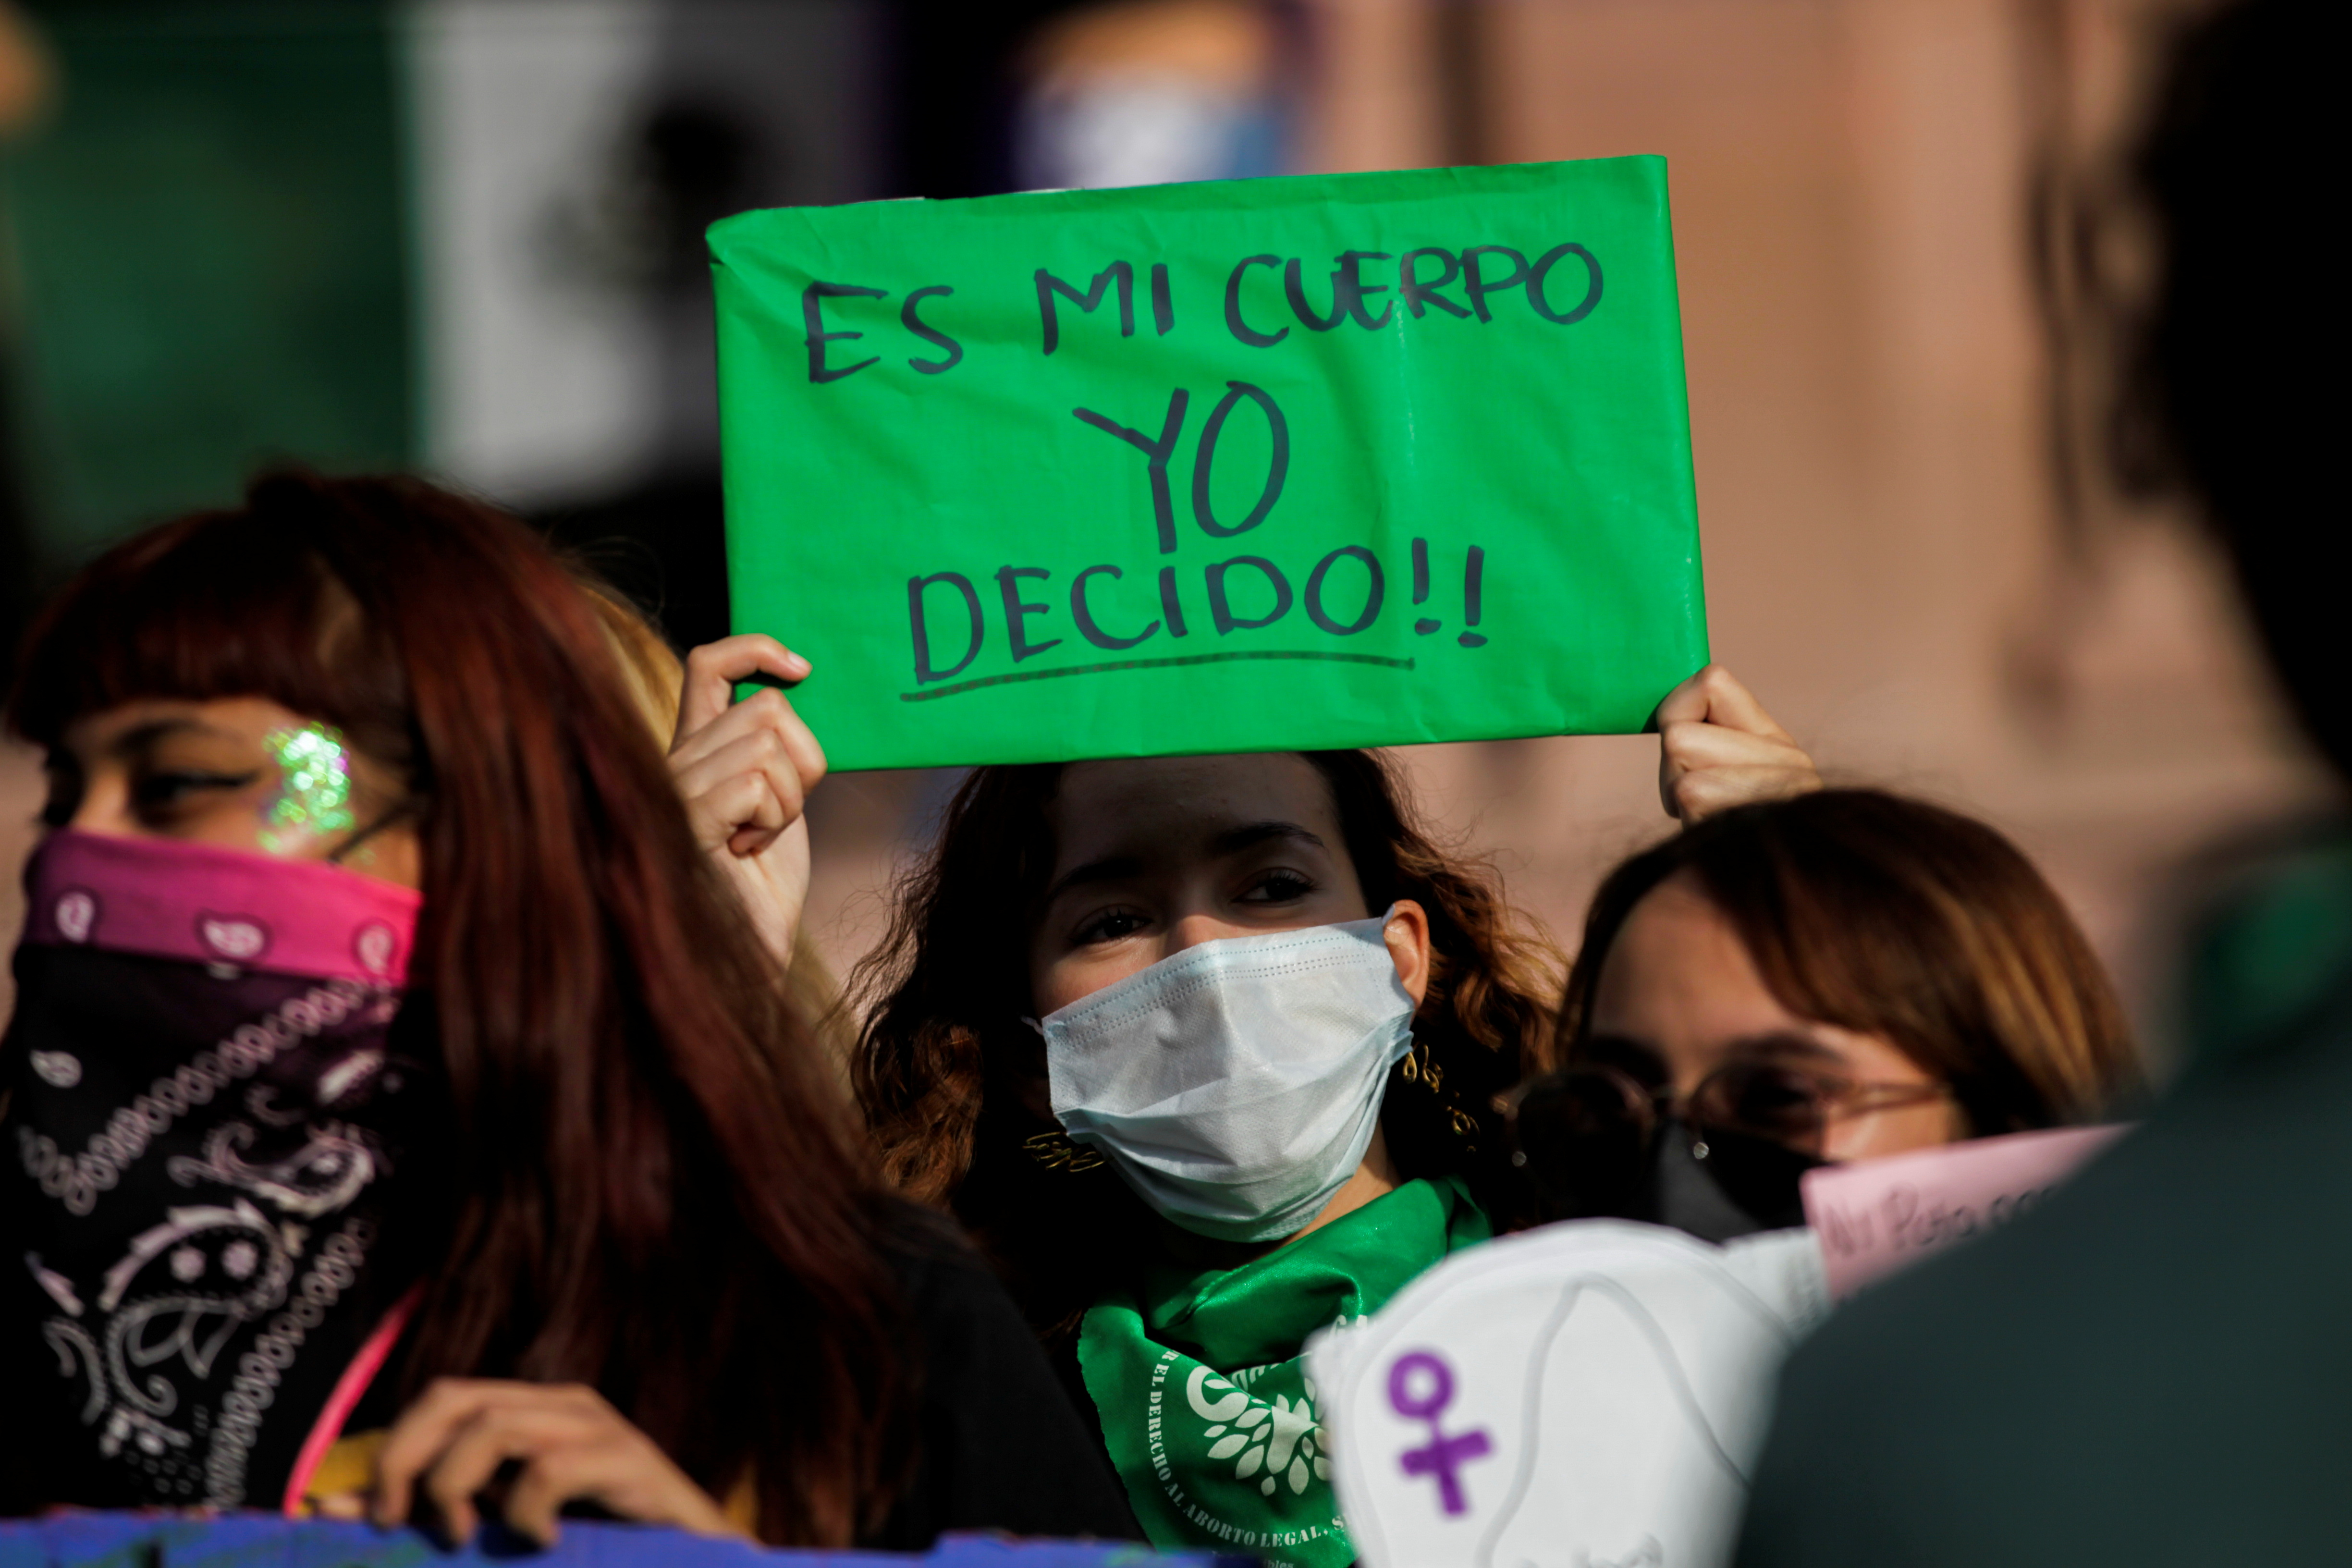 A woman holds up a banner which reads